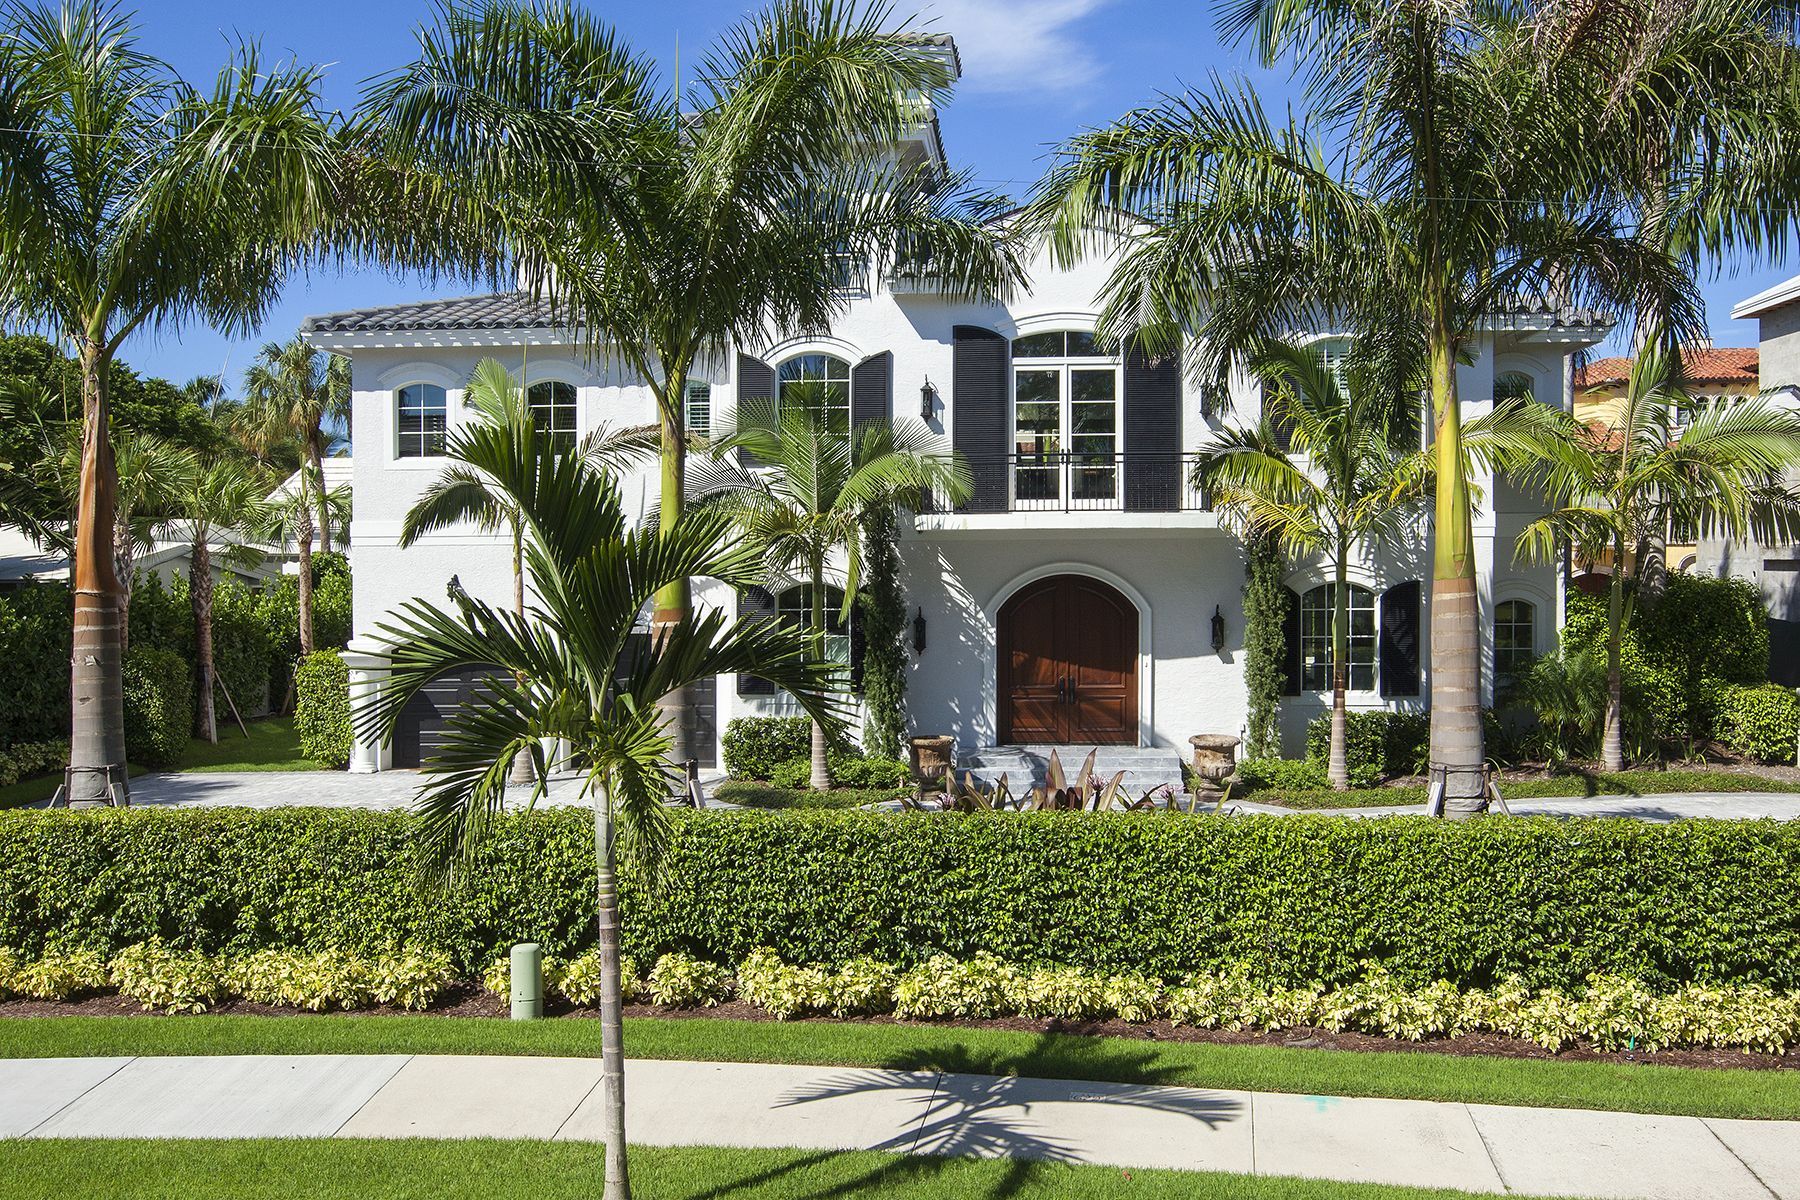 Single Family Home for Sale at OLD NAPLES 629 Gulf Shore Blvd N, Naples, Florida 34102 United States